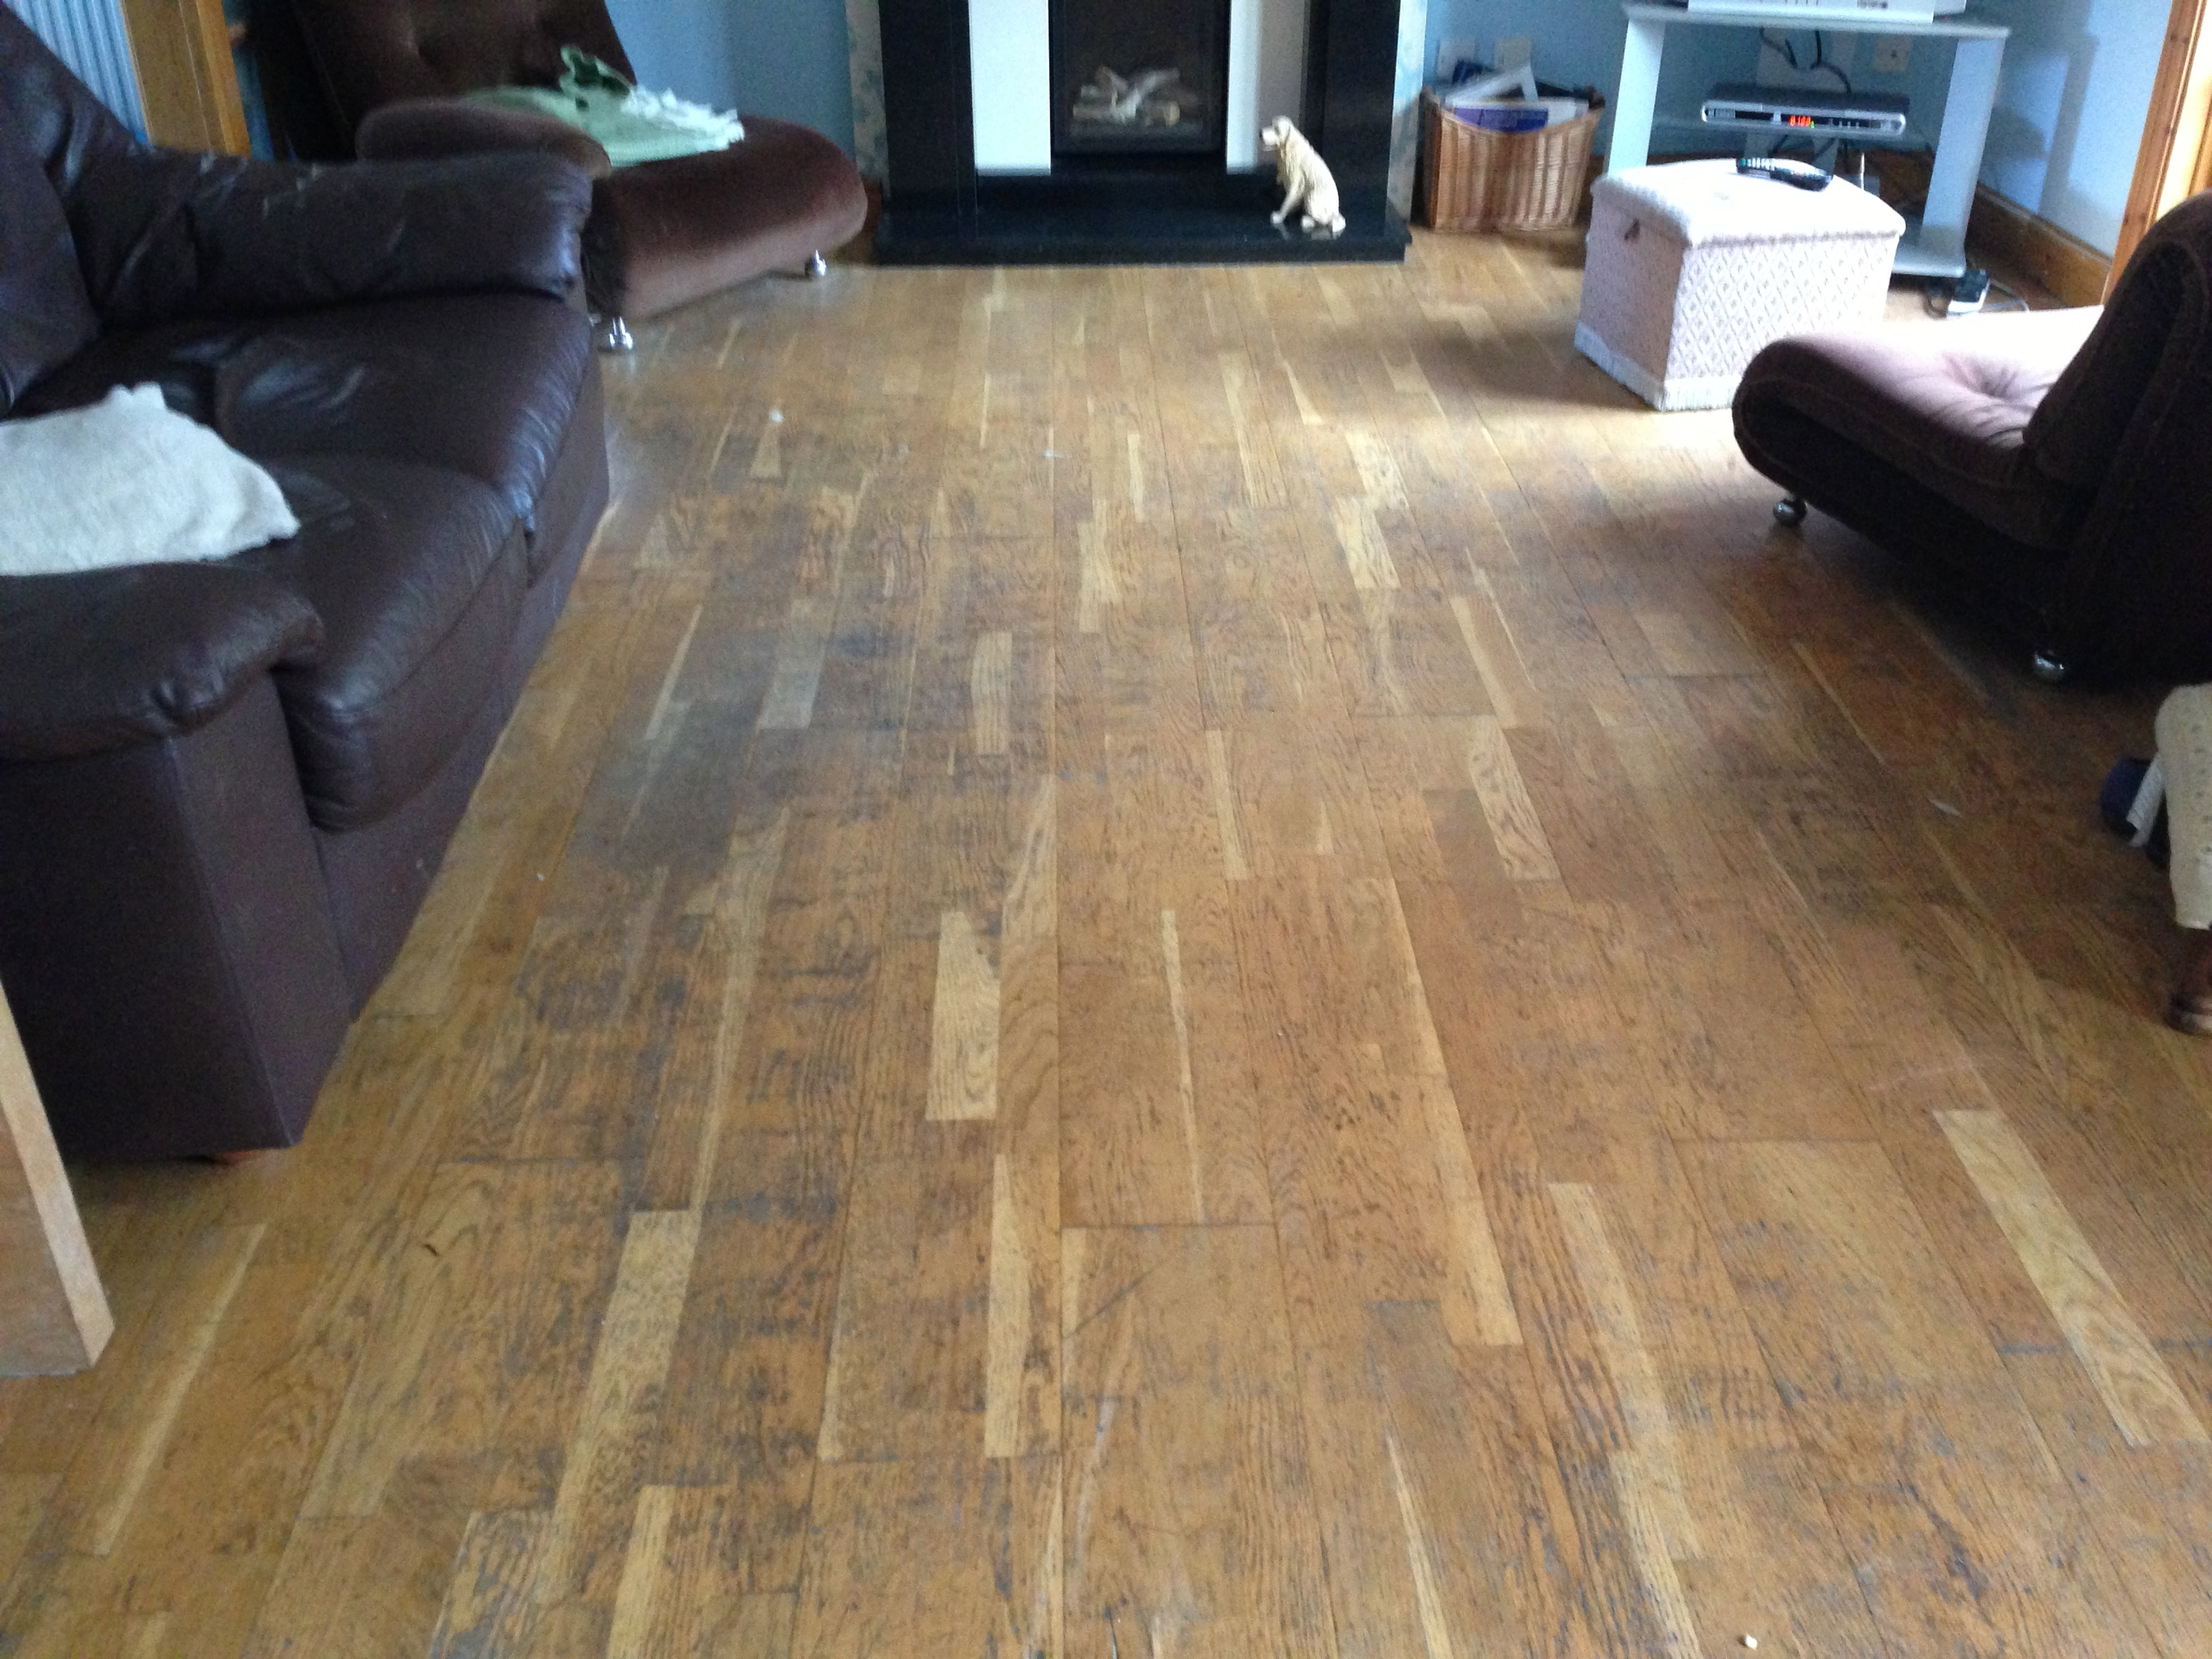 Damaged laminate wood floor